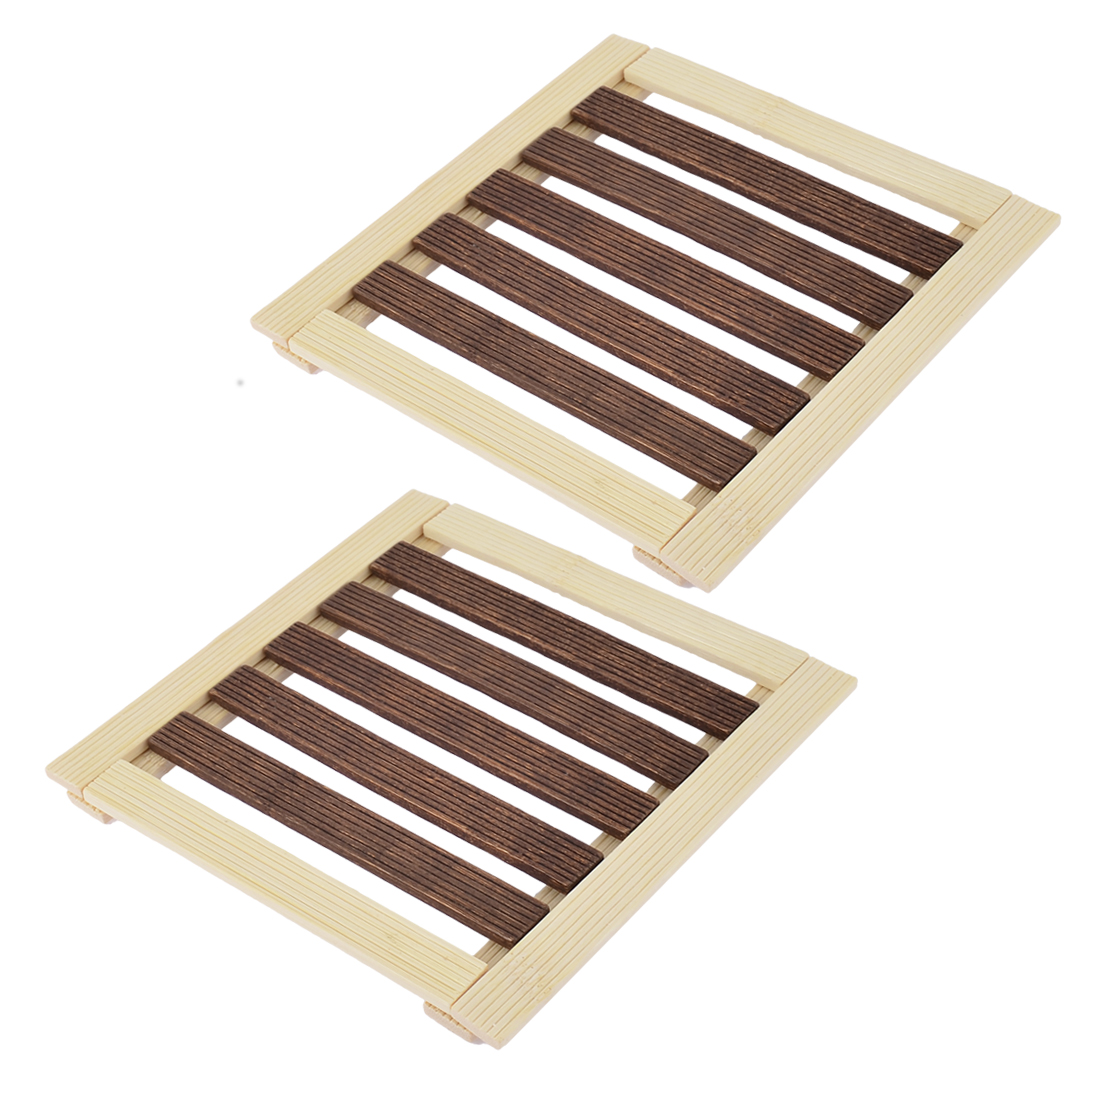 Home Table Dishes Plate Bamboo Insulation Mat Beige Brown 17 x 17cm 2pcs